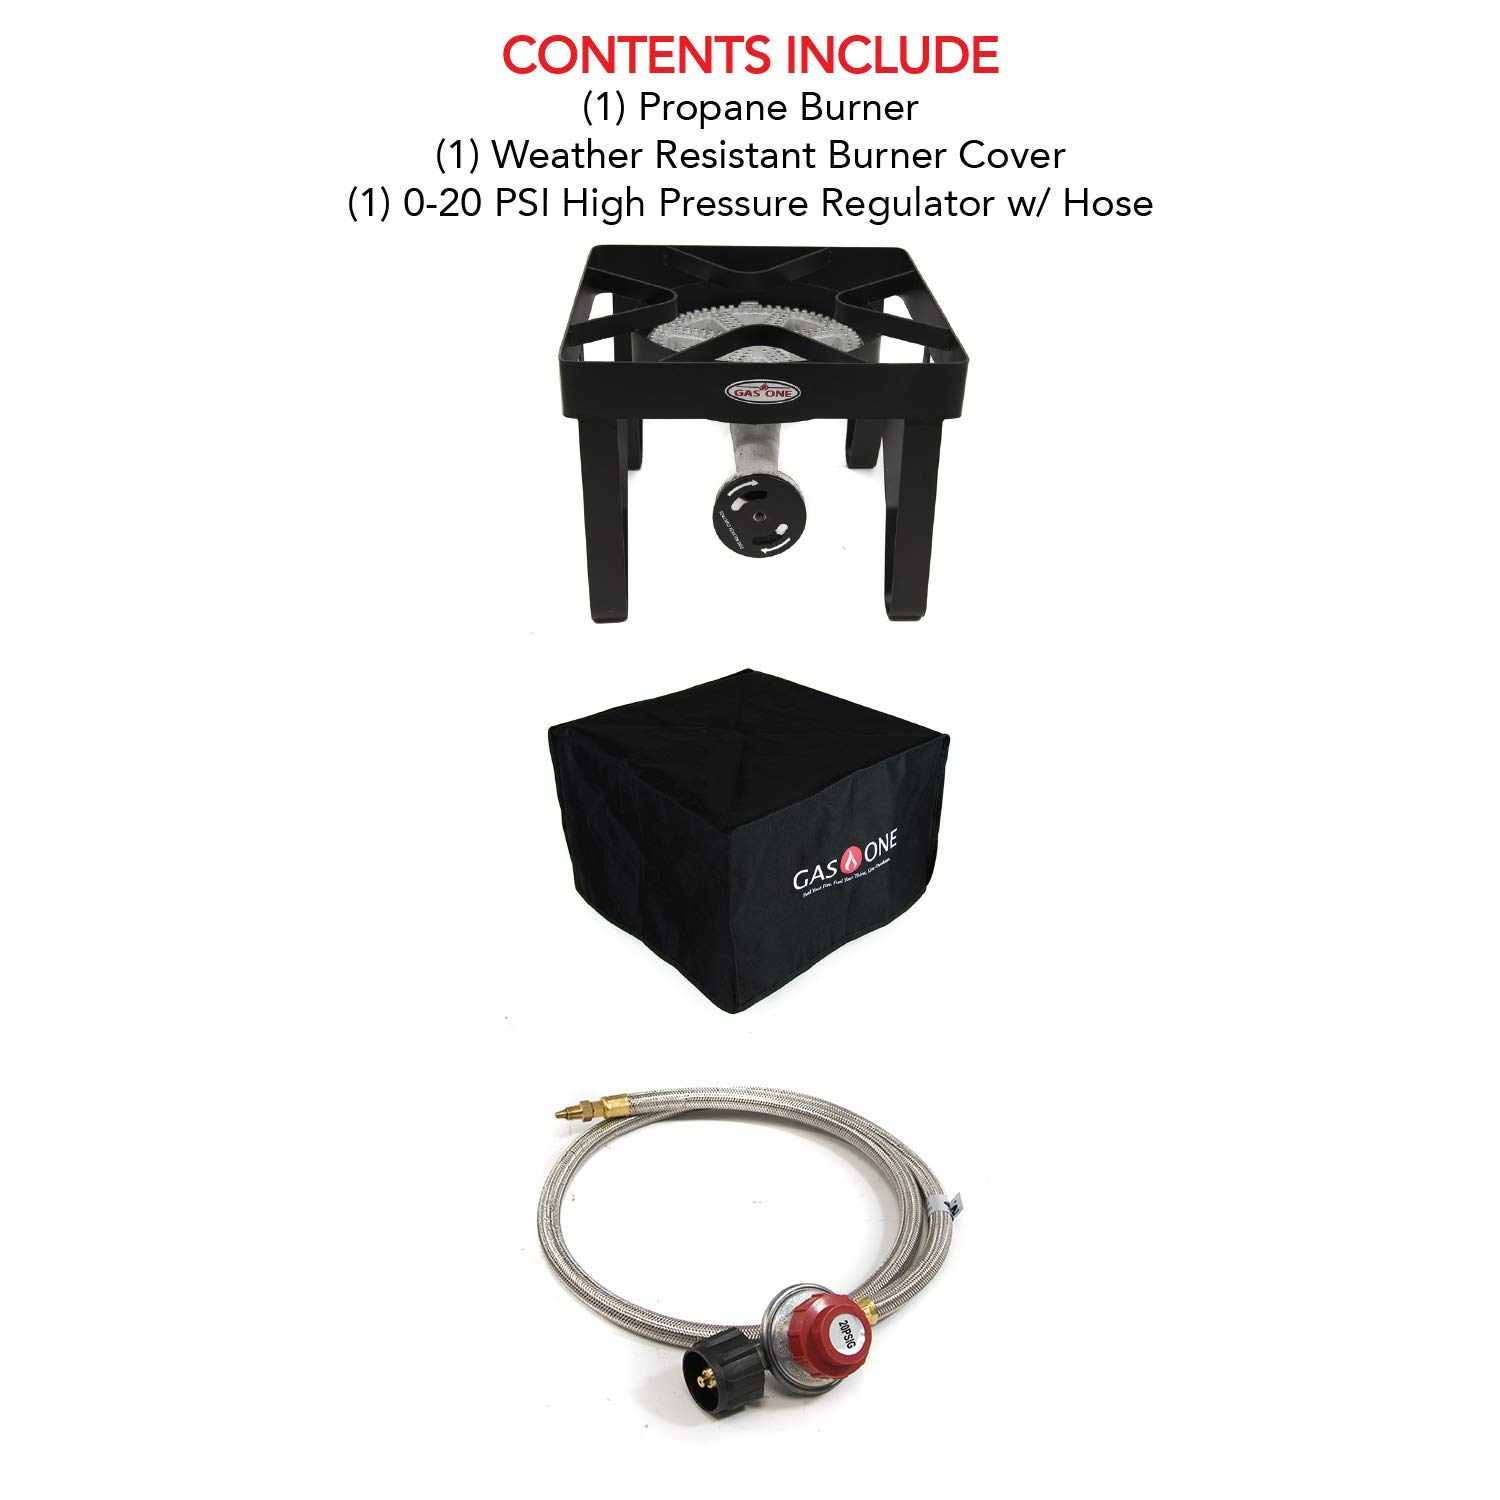 Gas ONE 200,000 BTU Propane Burner with Cover Single Burner Outdoor Burner Camp Stove Propane Gas Cooker with Adjustable 0-20PSI Regulator and Steel Braided Hose Perfect for Home Brewing, Turkey Fry, by GasOne (Image #4)